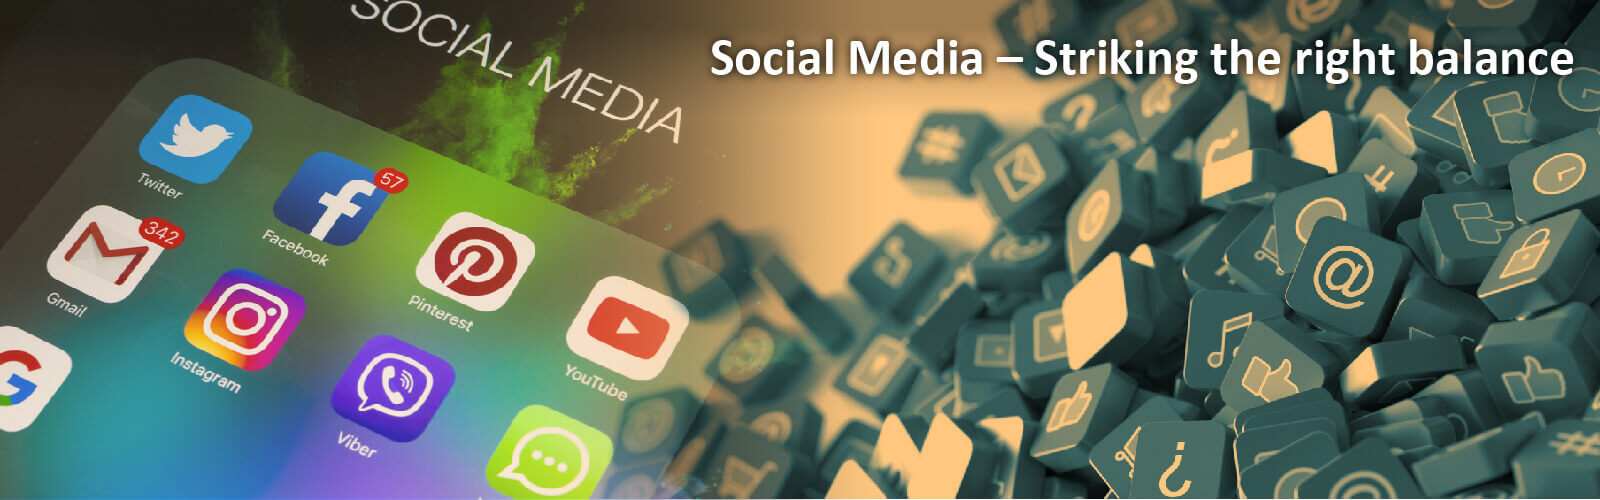 Social Media – Striking the right balance